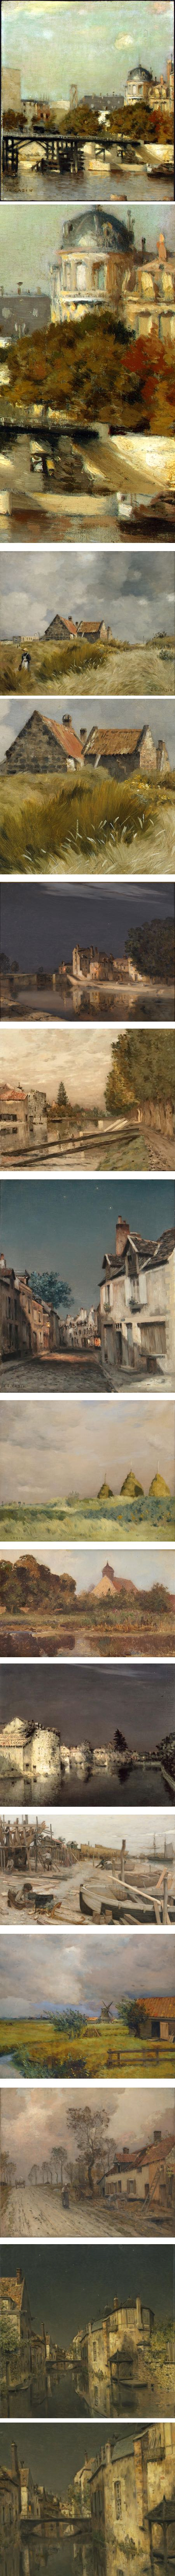 Jean-Charles Cazin, 19th century French landscapes and cityscapes, 19th century French landscapes